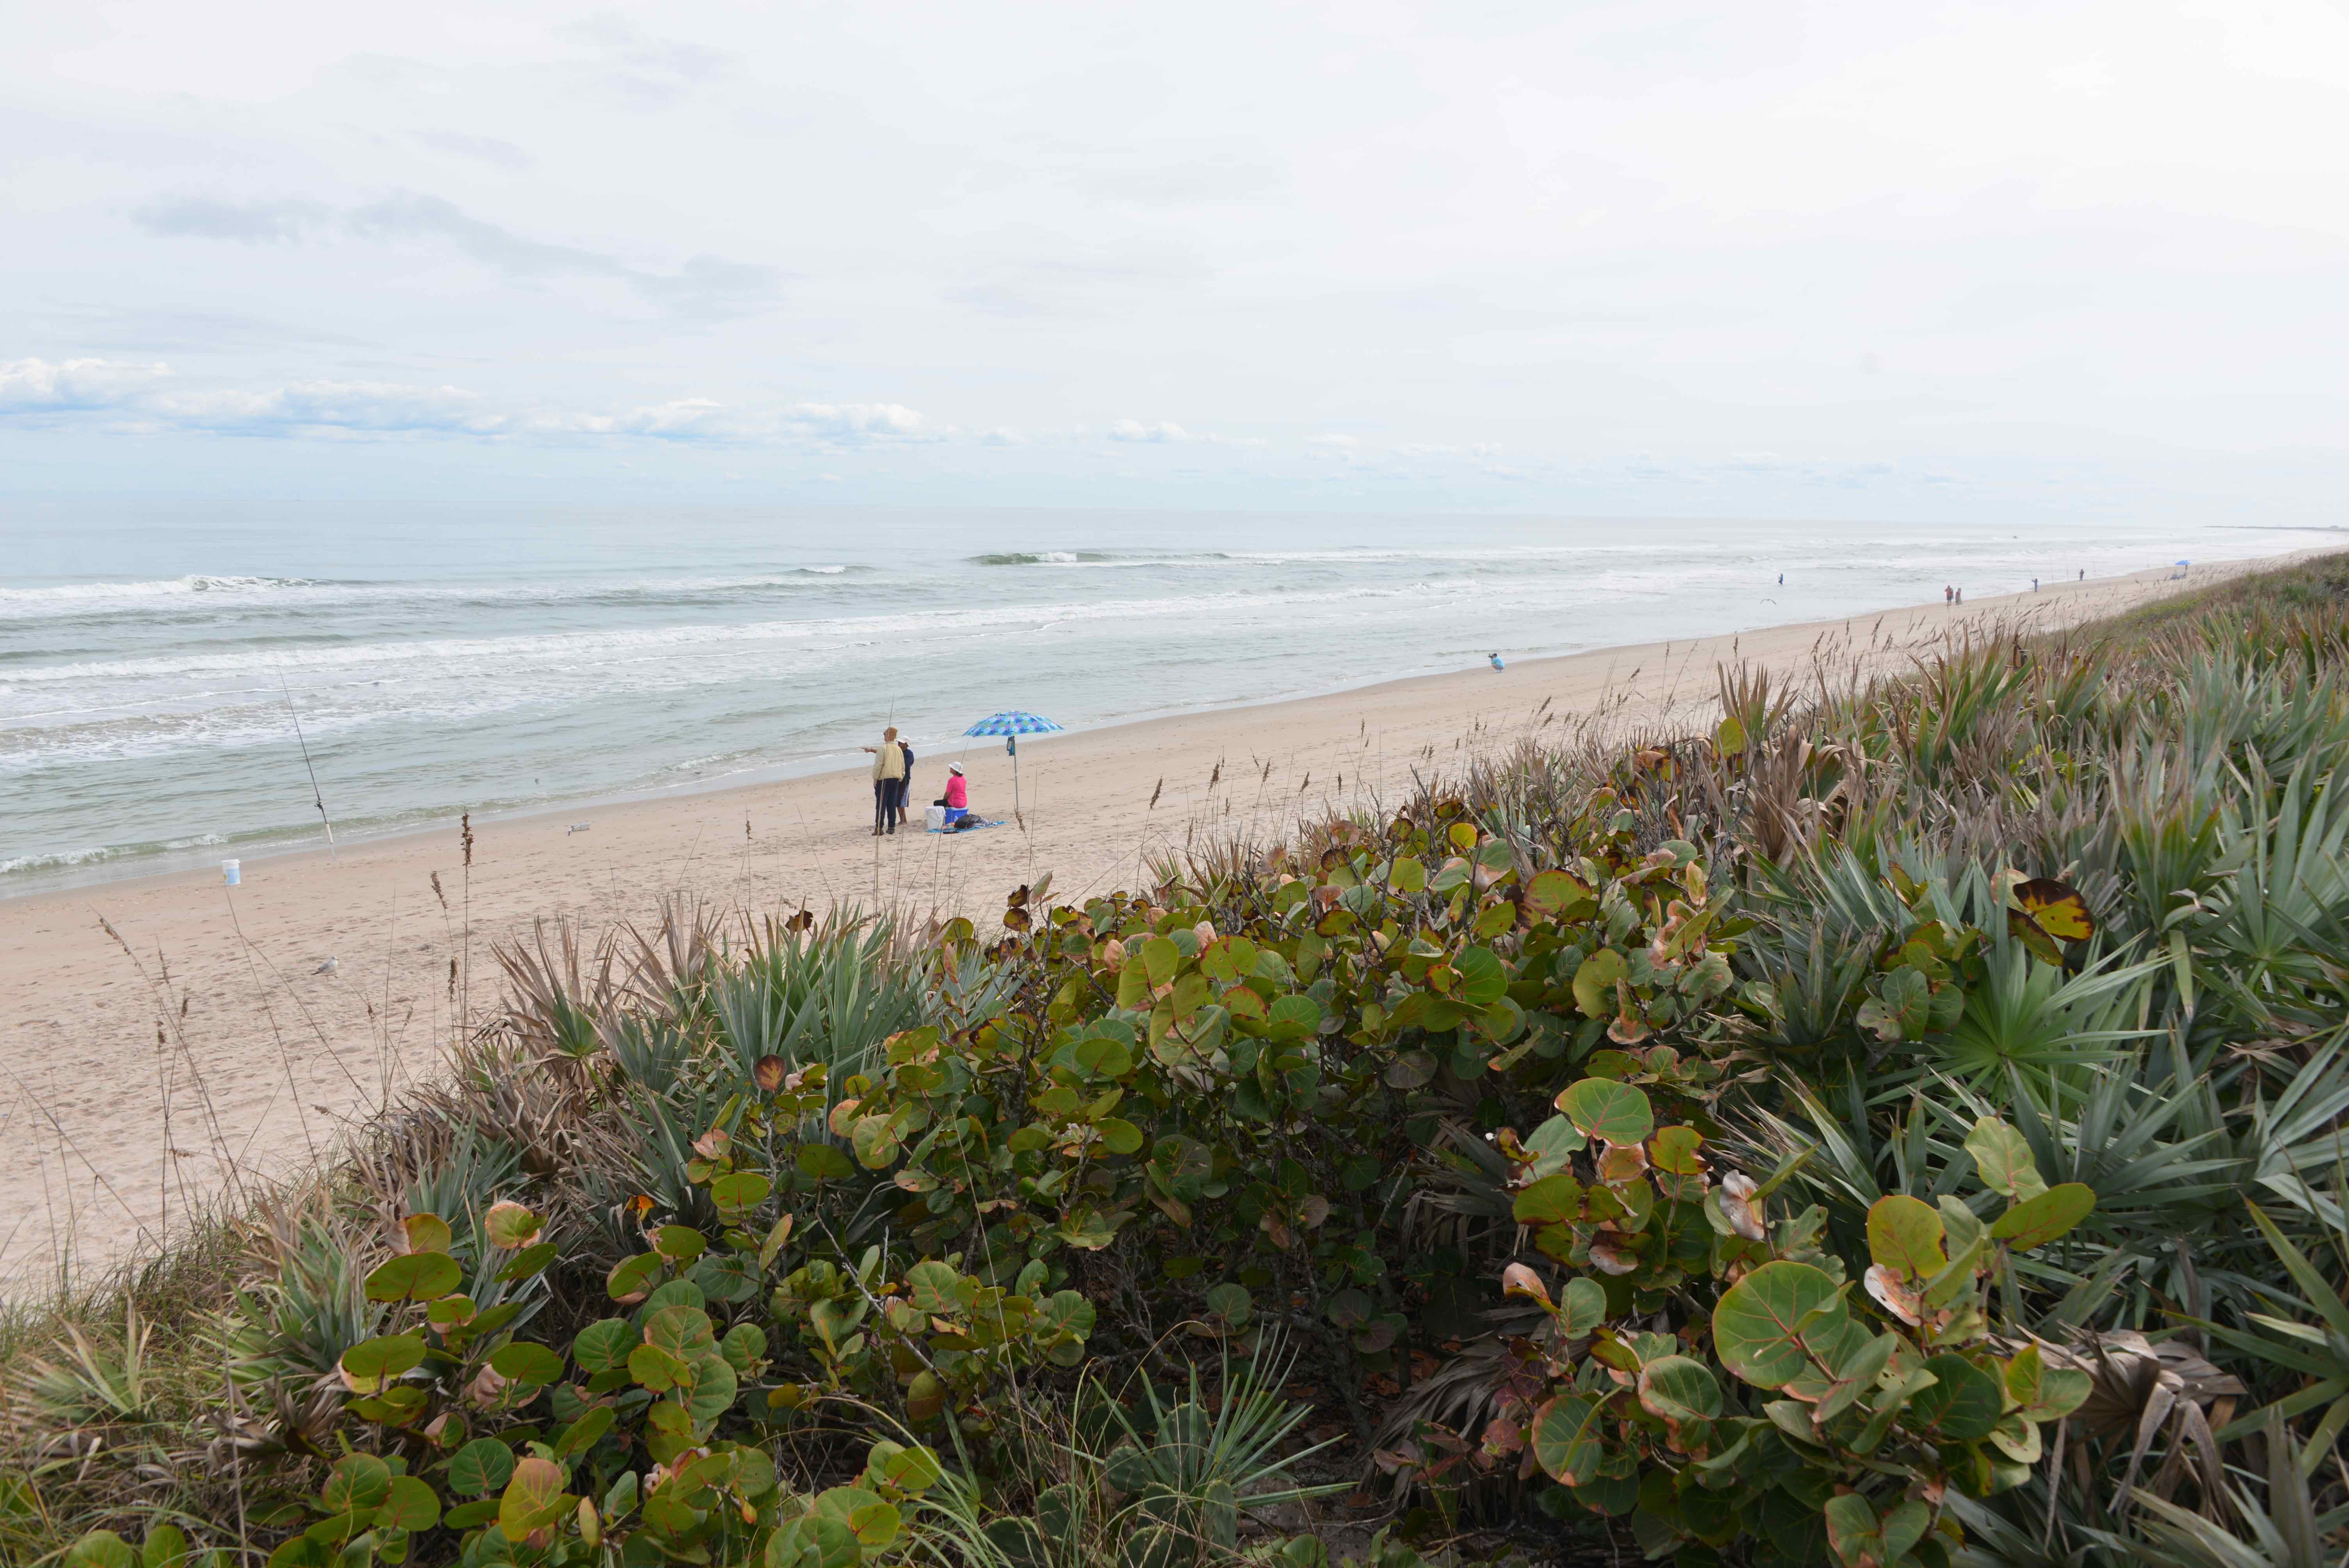 Cape Canaveral National Seashore